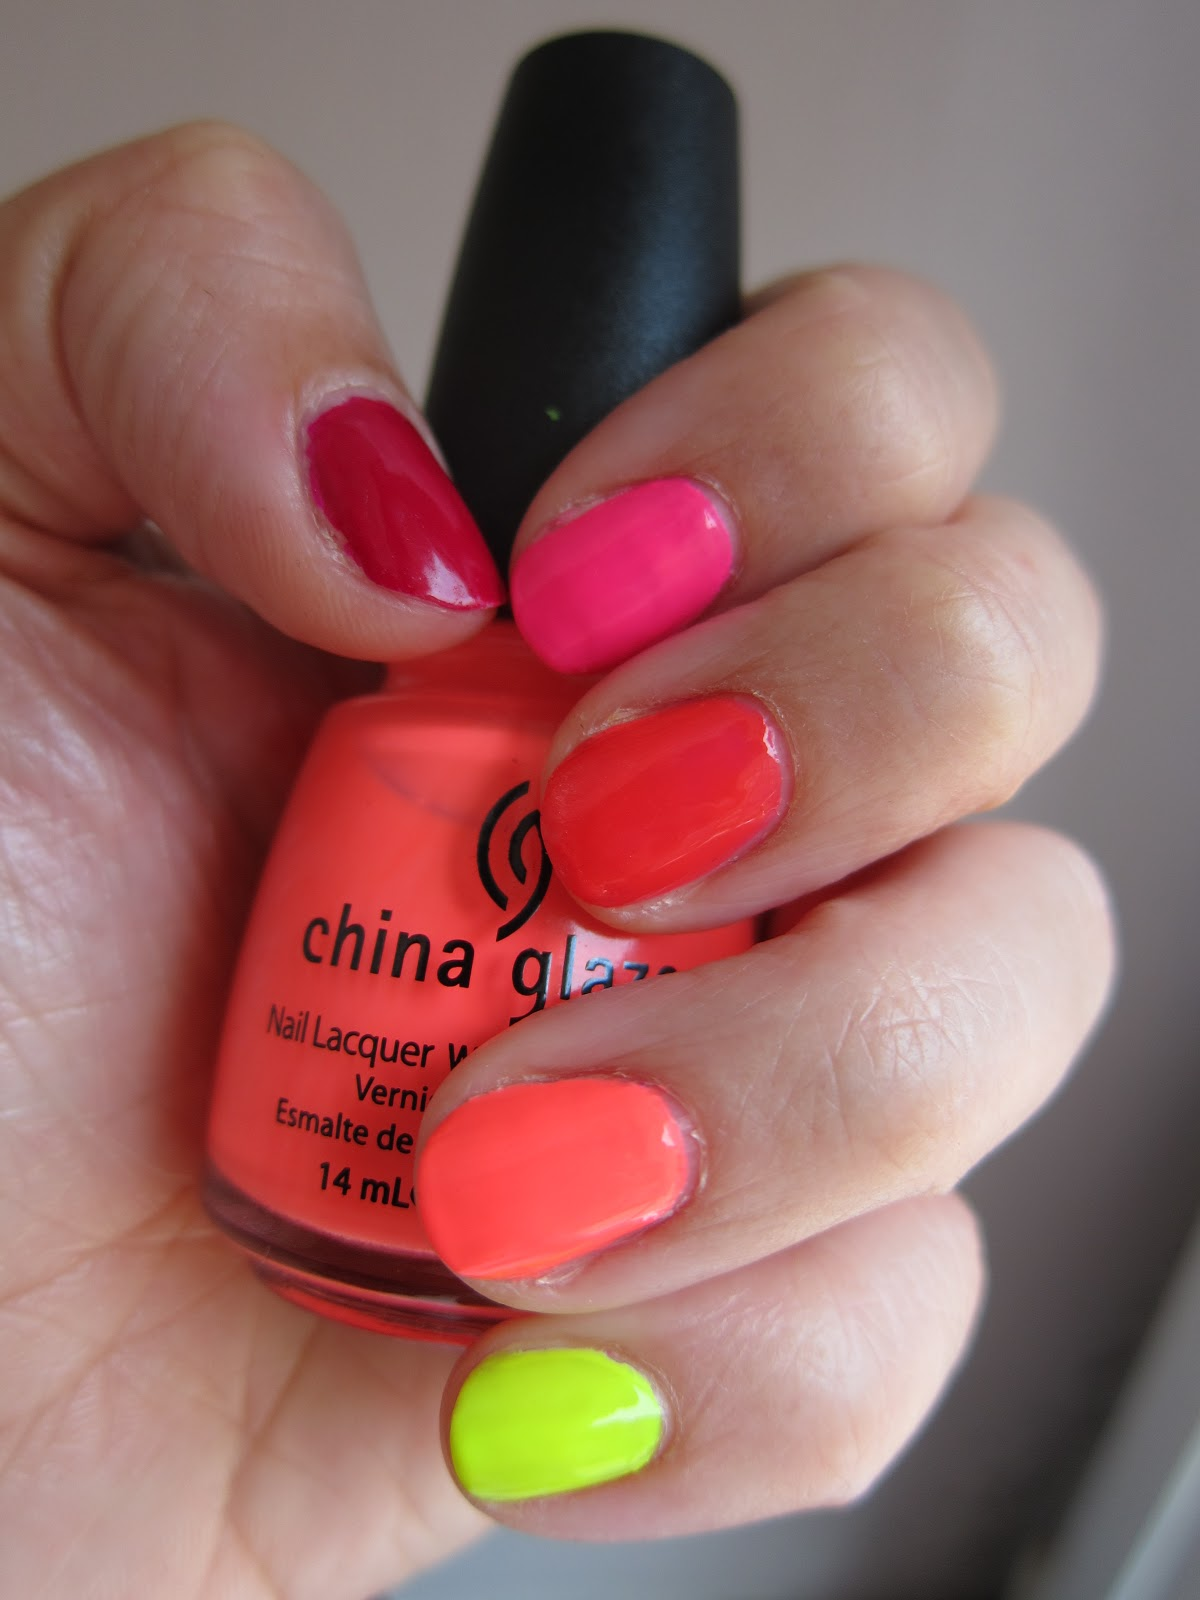 Nails of the Week- Neon Ombre Nails | Mrs Jones London